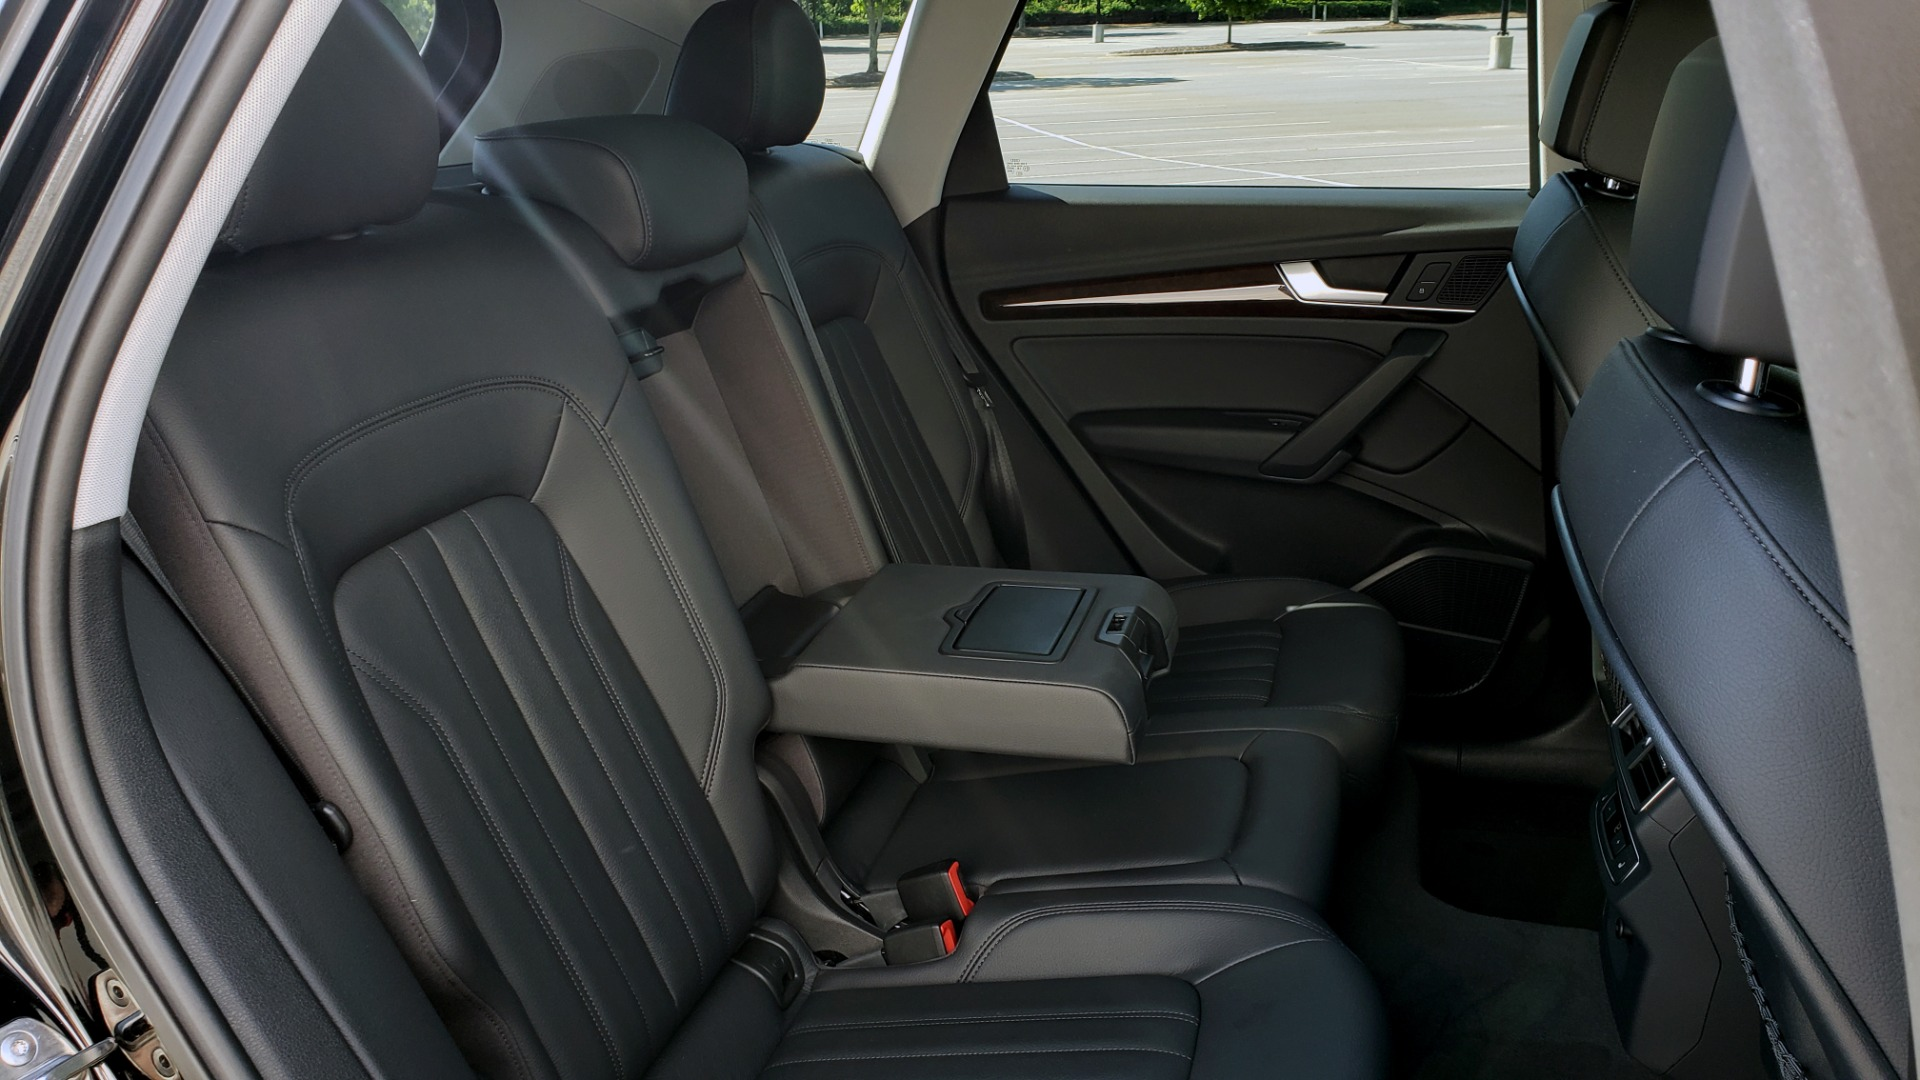 Used 2018 Audi Q5 PREMIUM PLUS / NAV / B&O SND / CLD WTHR / SUNROOF / REARVIEW for sale Sold at Formula Imports in Charlotte NC 28227 76